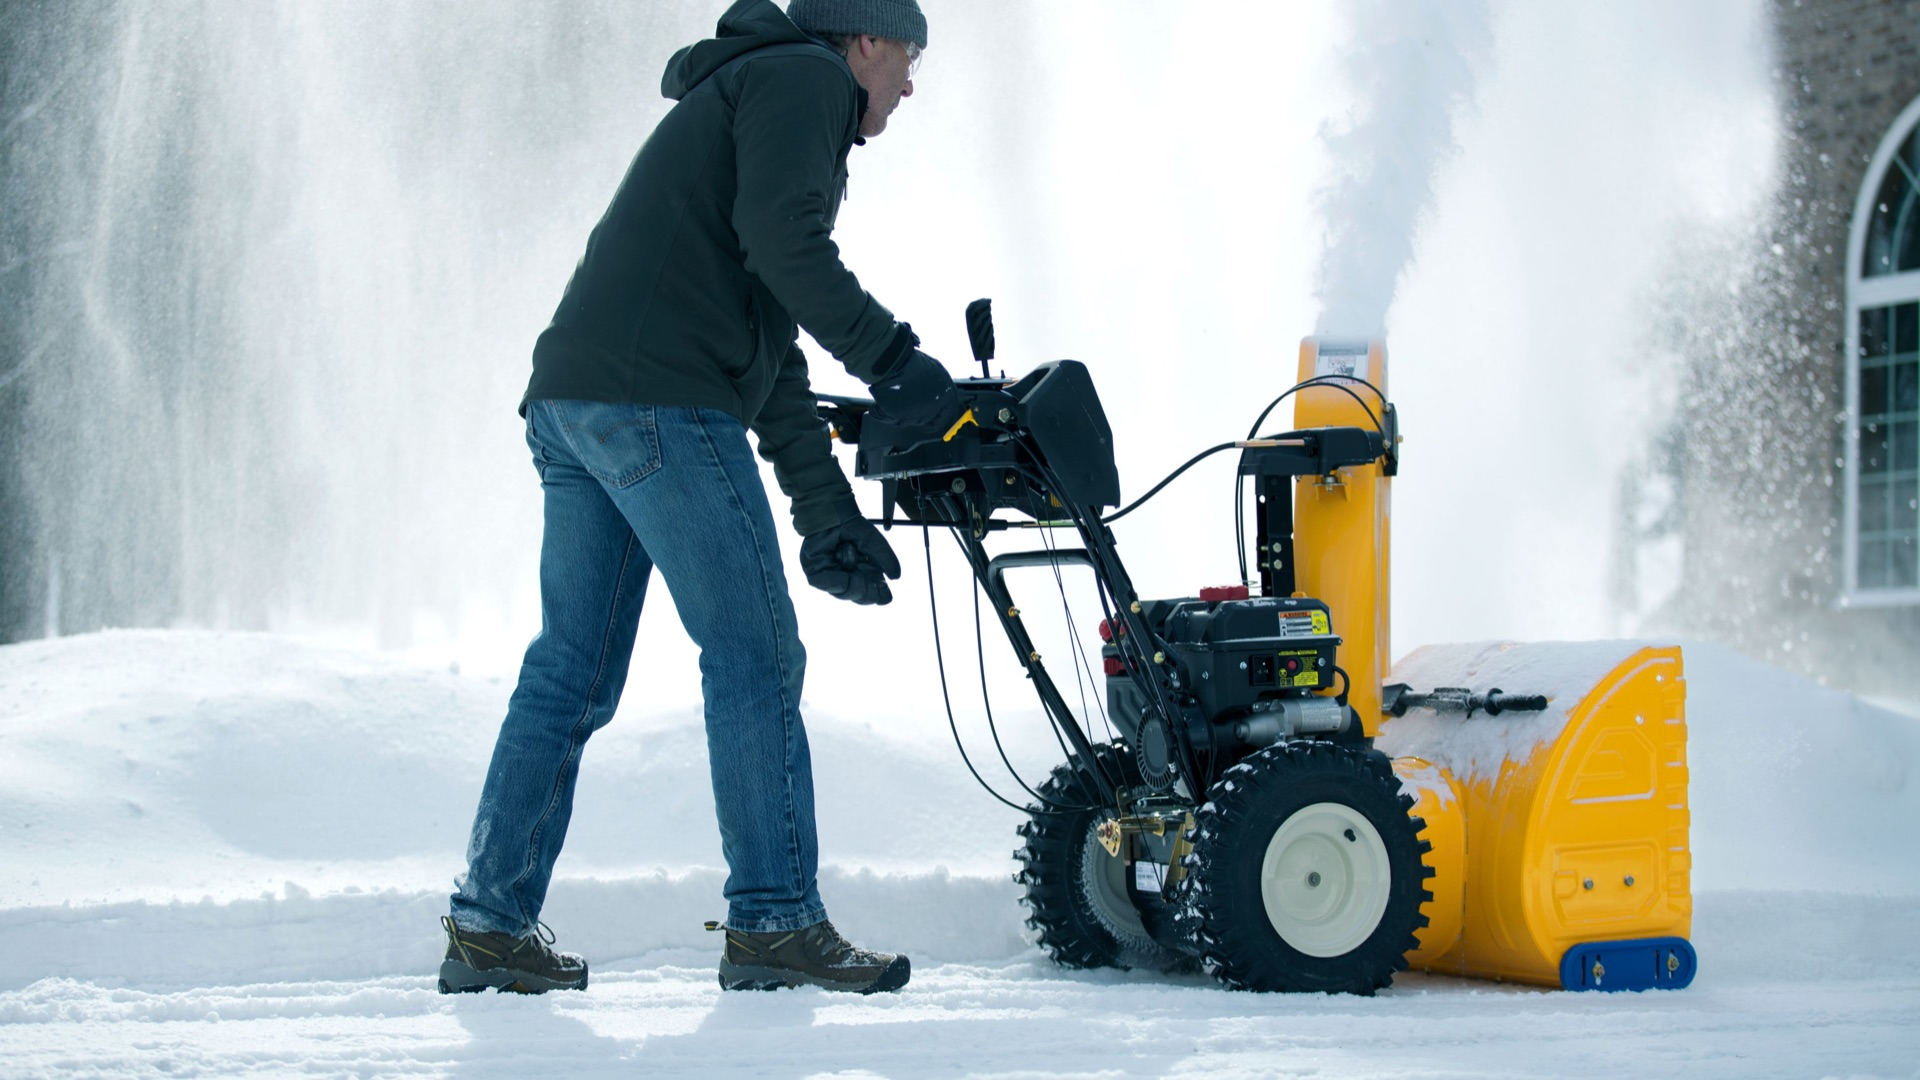 man snow blowing his driving and adjusting the angle of the chute